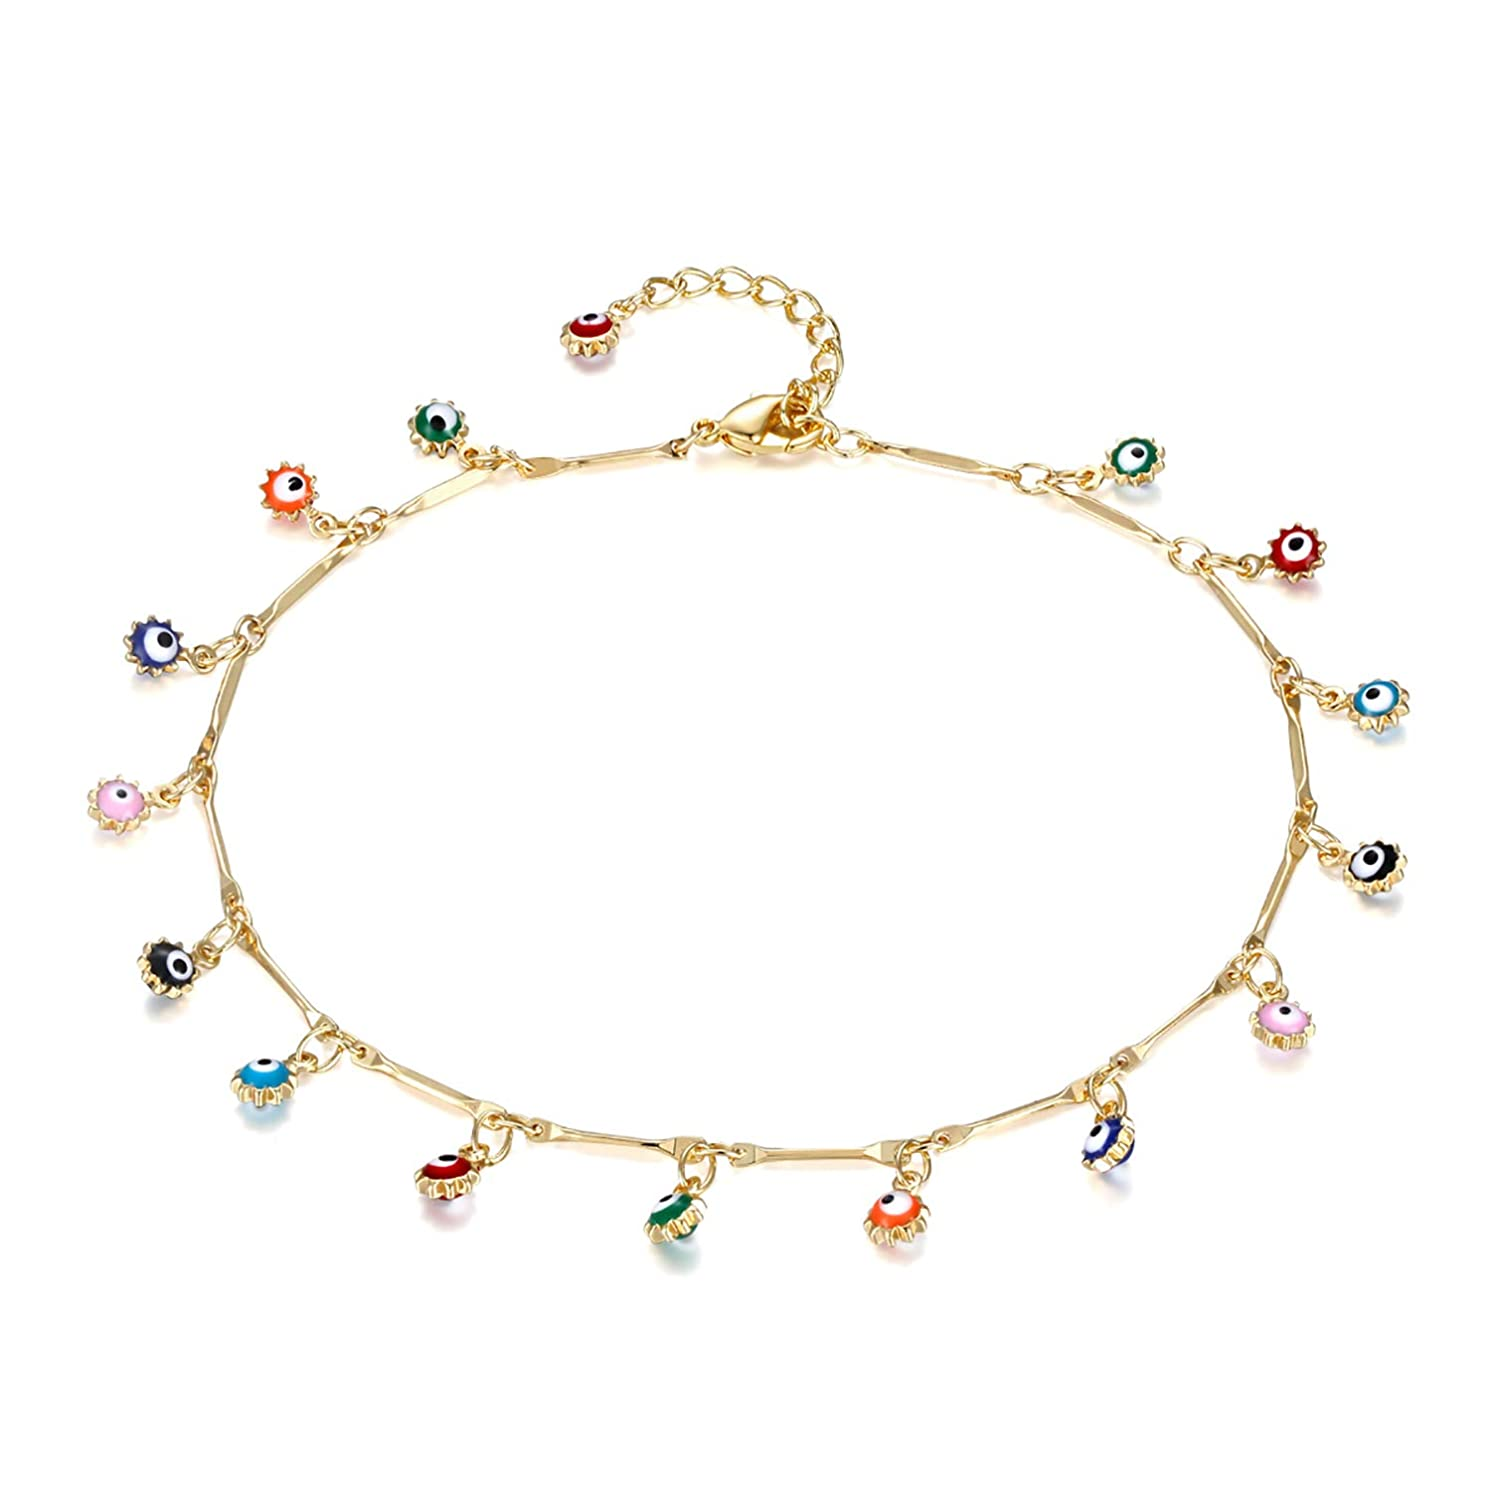 LOYATA Dainty Ankle Bracelet, 14K Gold Plated Tiny Bead Anklet Dainty White Cubic Zirconia Cross Tassel Foot Chain Cute Lucky Moon Evil Eye Foot Jewelry Boho Anklets for Women